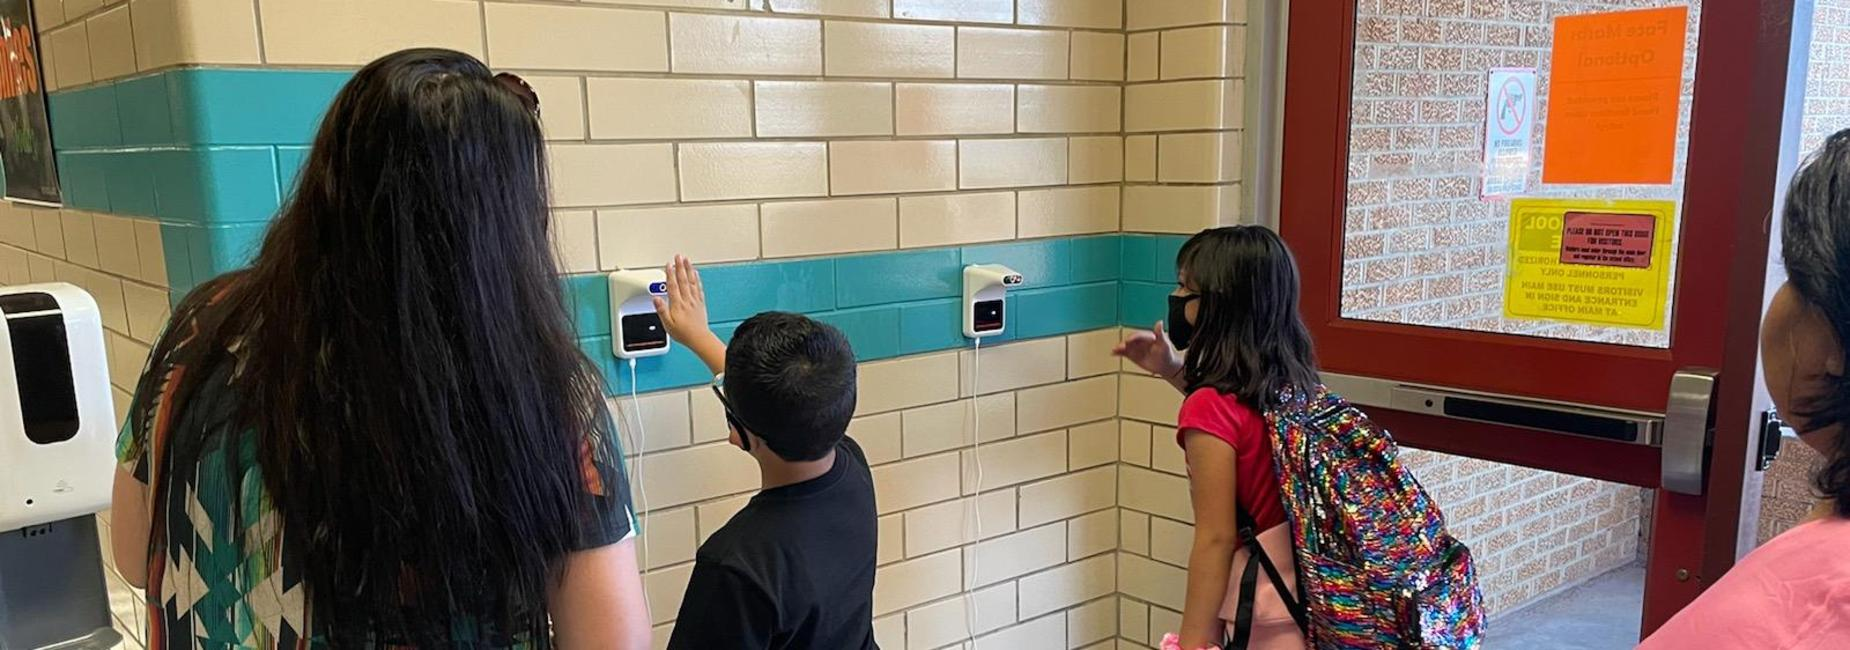 students checking temps